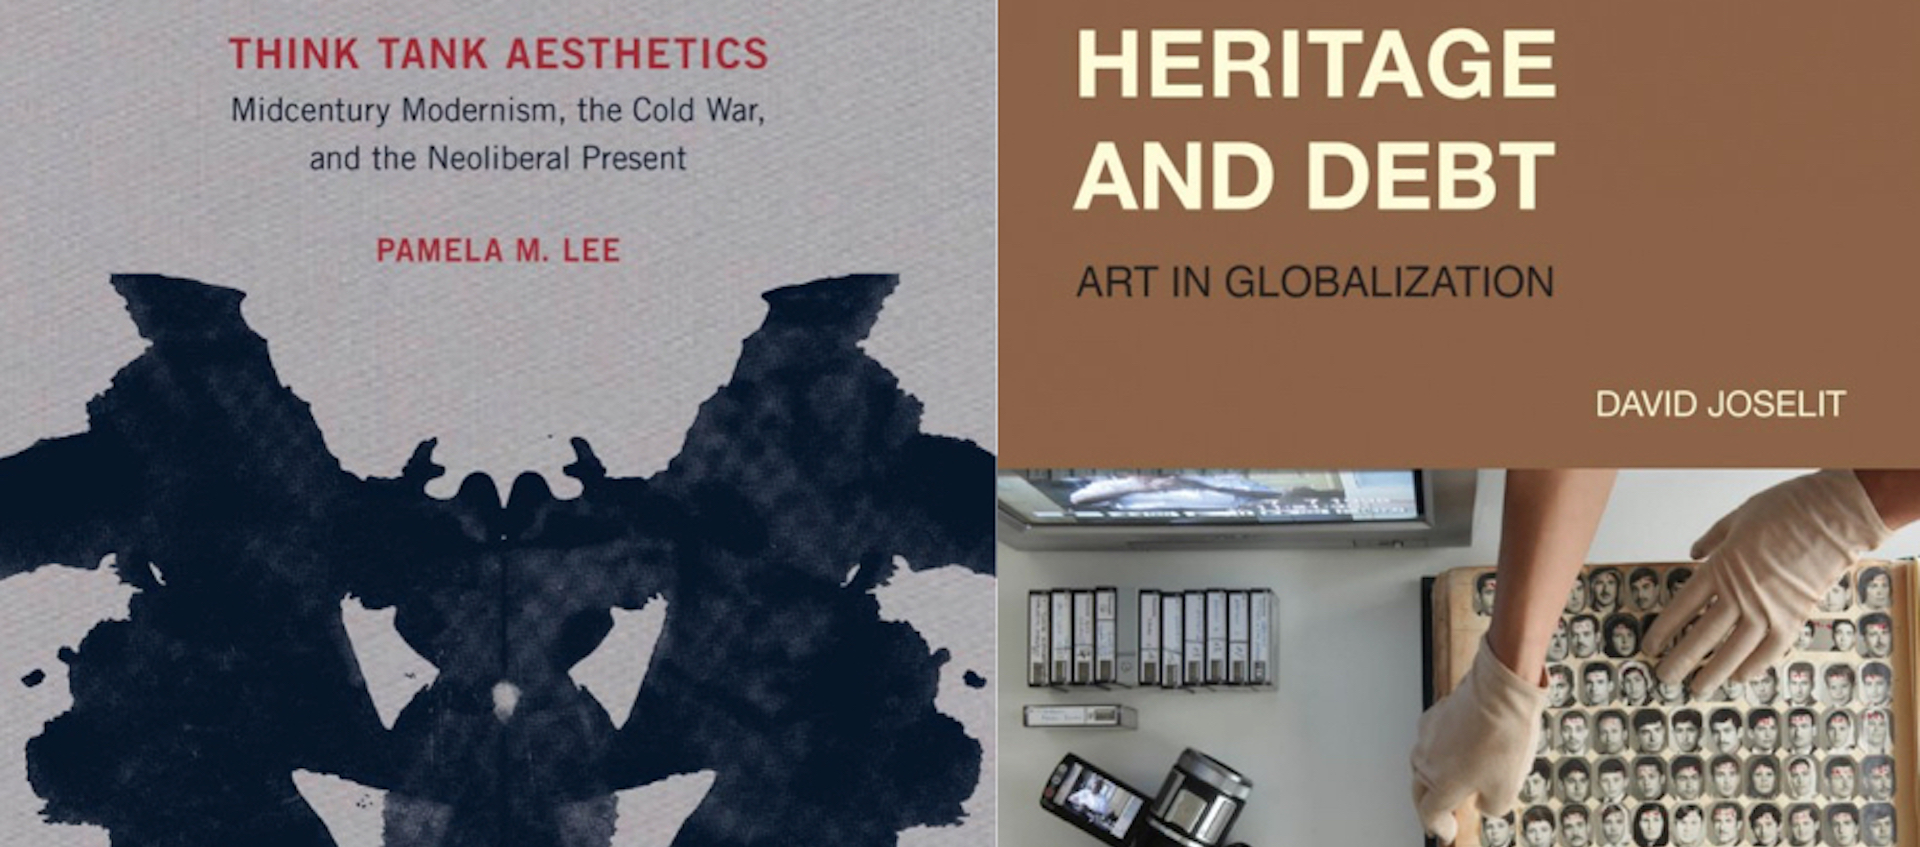 Book covers for Think Tank Aesthetics by Pamela M. Lee and Heritage and Debt by David Joselit